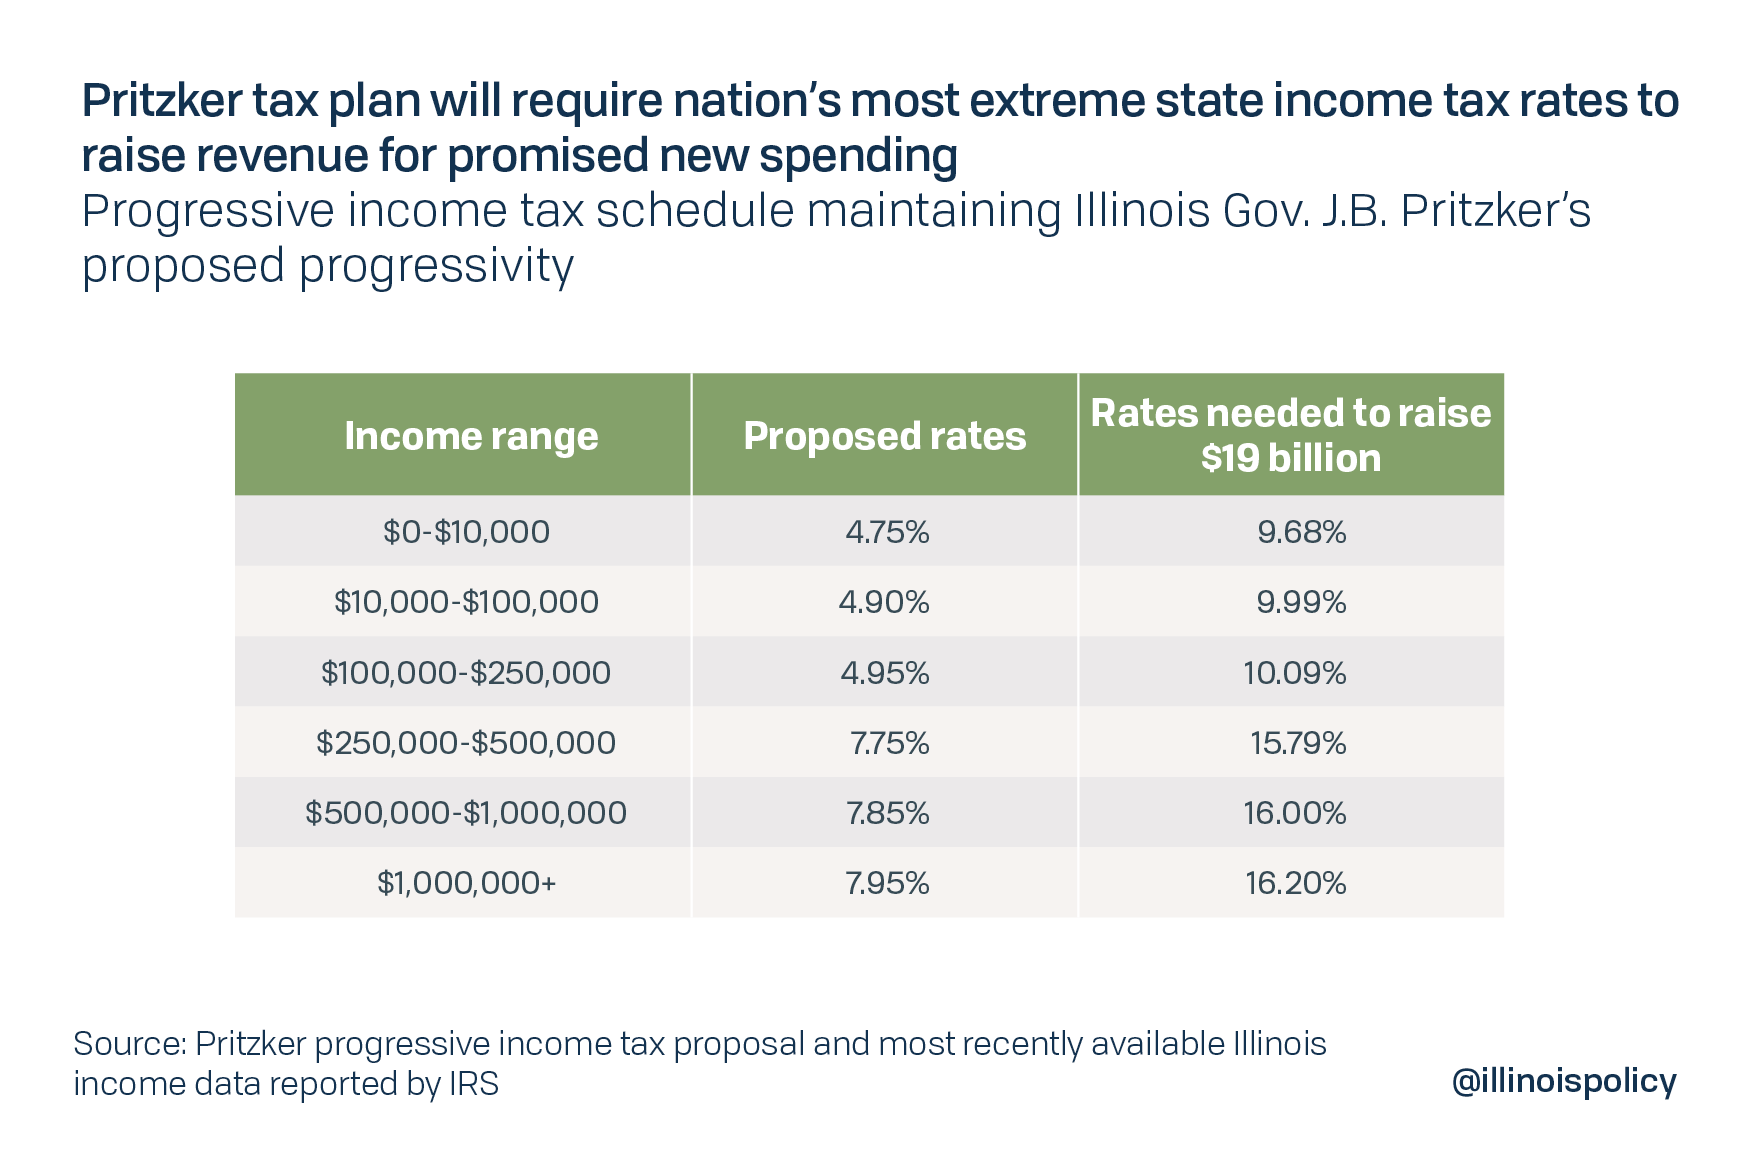 Pritzker tax plan will require nation's most extreme state income tax rates to raise revenue for promised spending